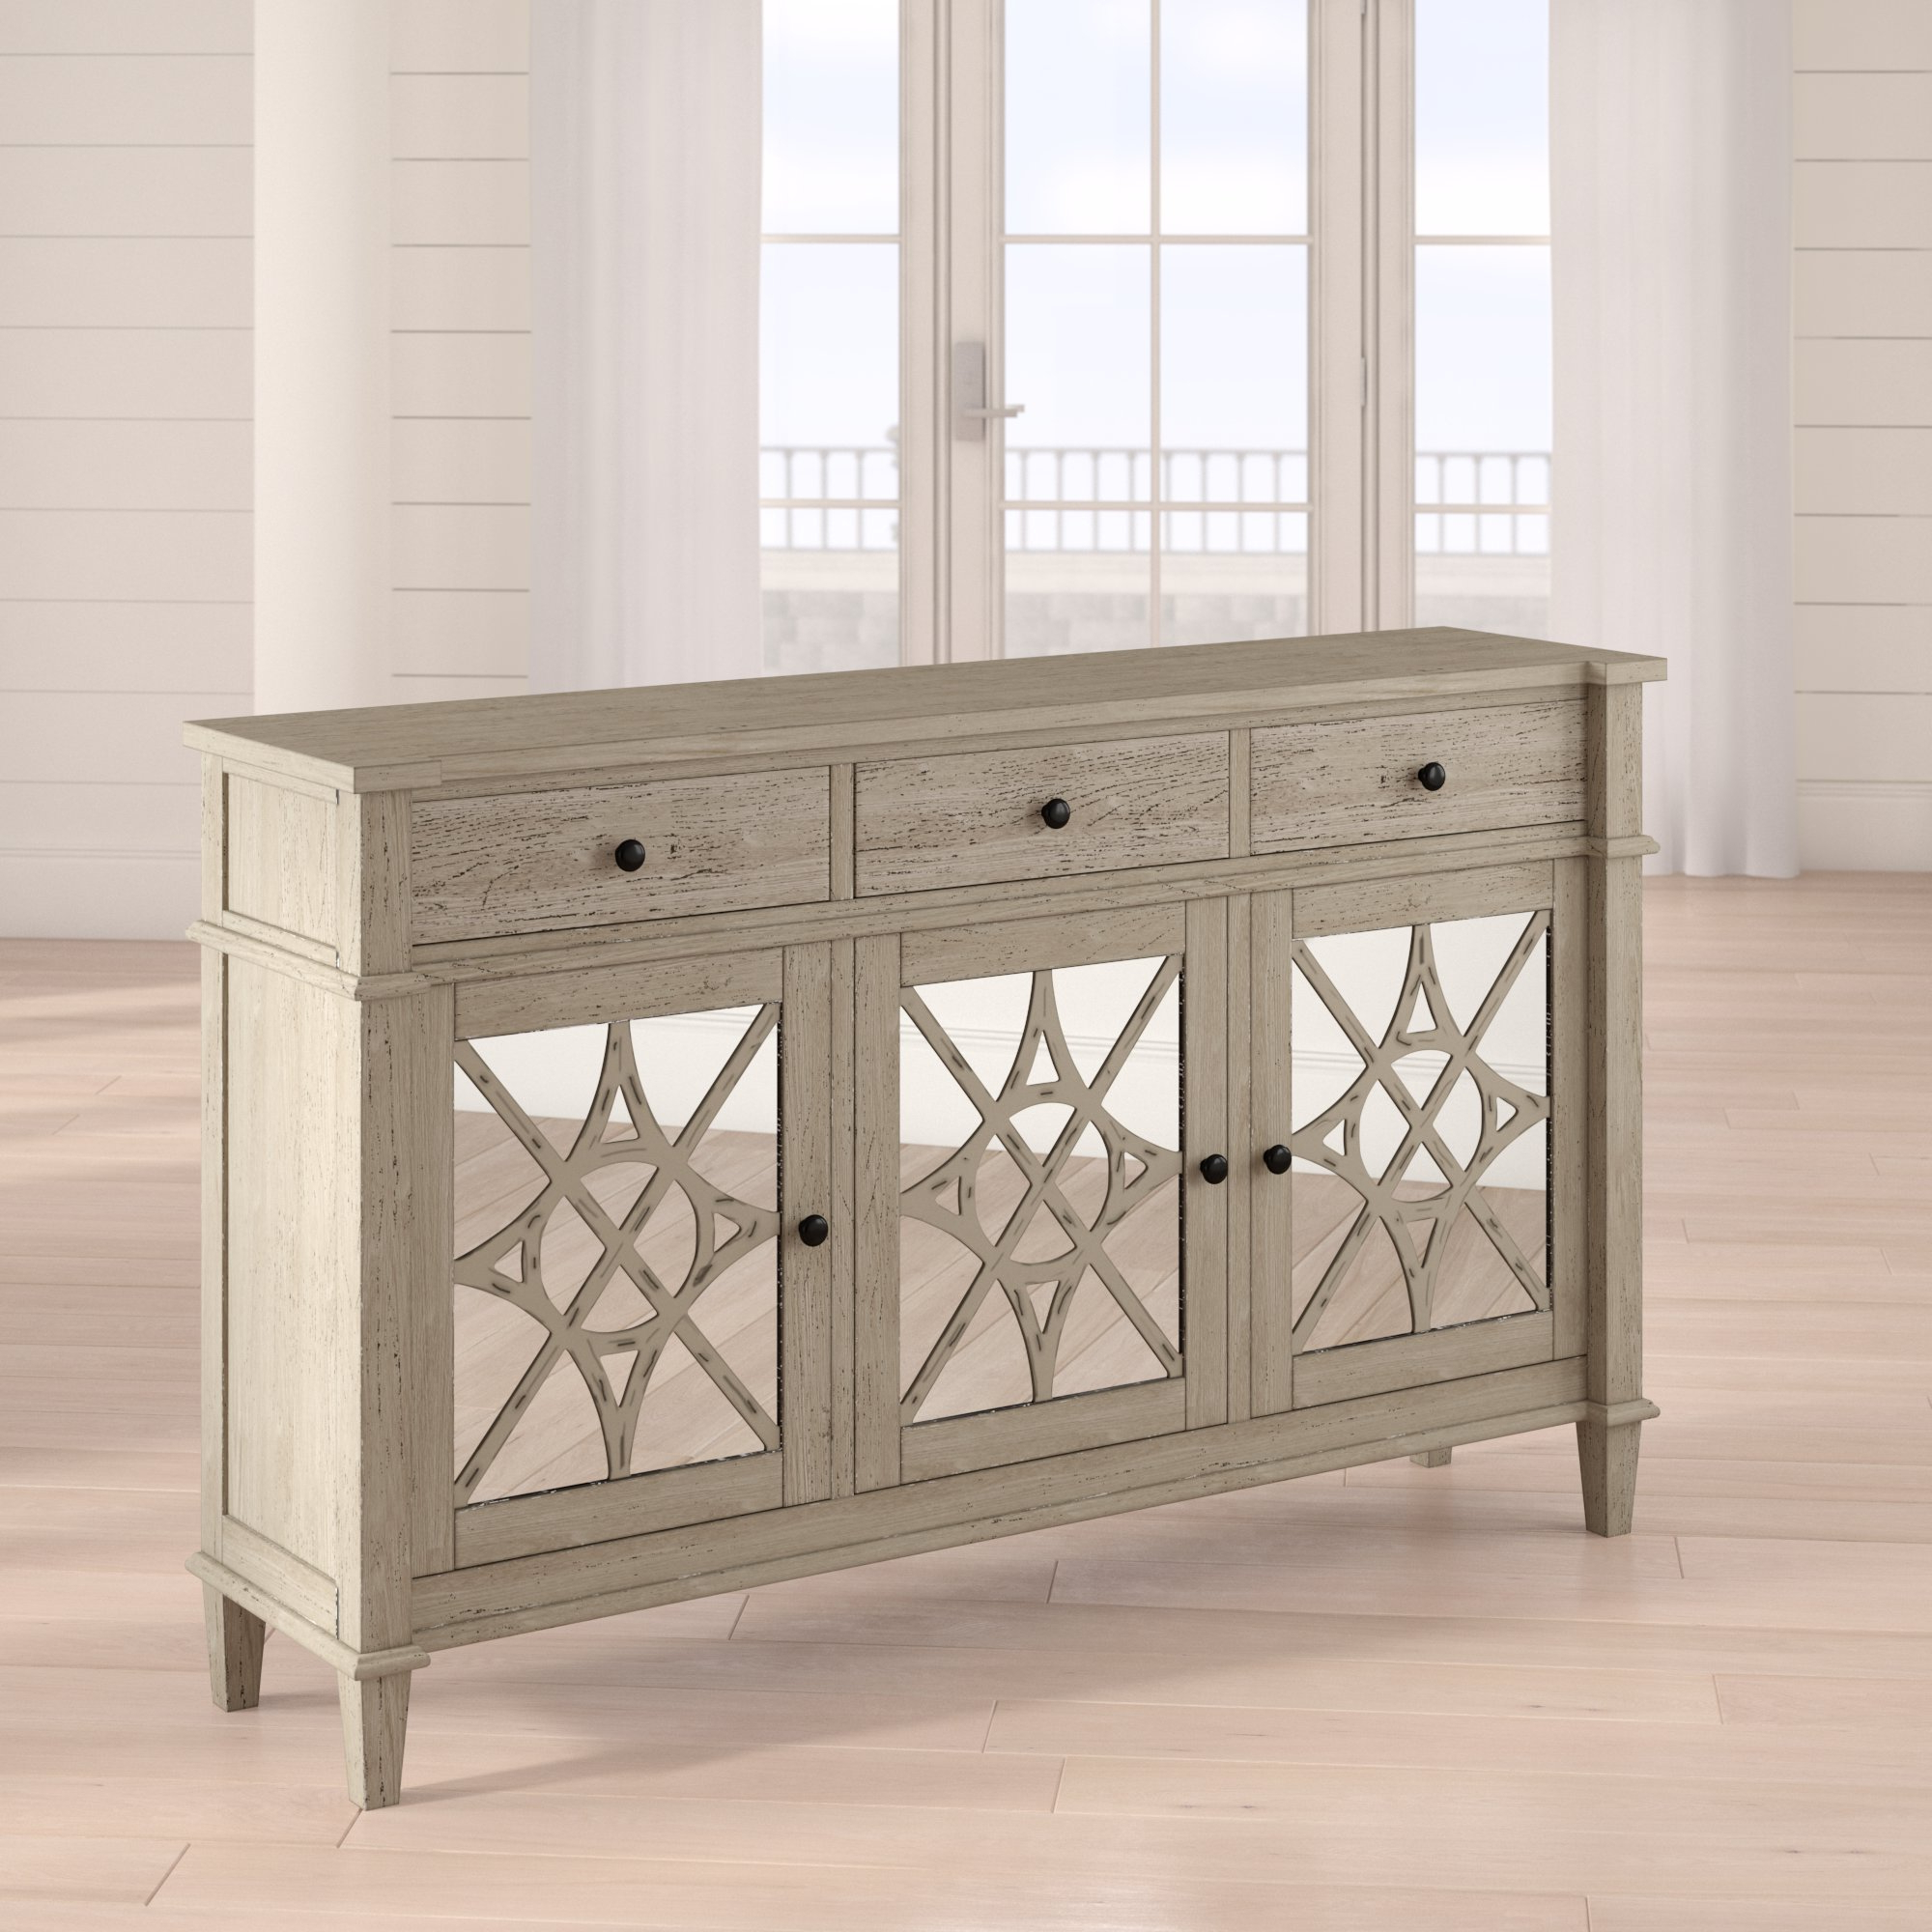 Birch Sideboard / Credenza Sideboards & Buffets You'll Love Within Tavant Sideboards (View 12 of 20)